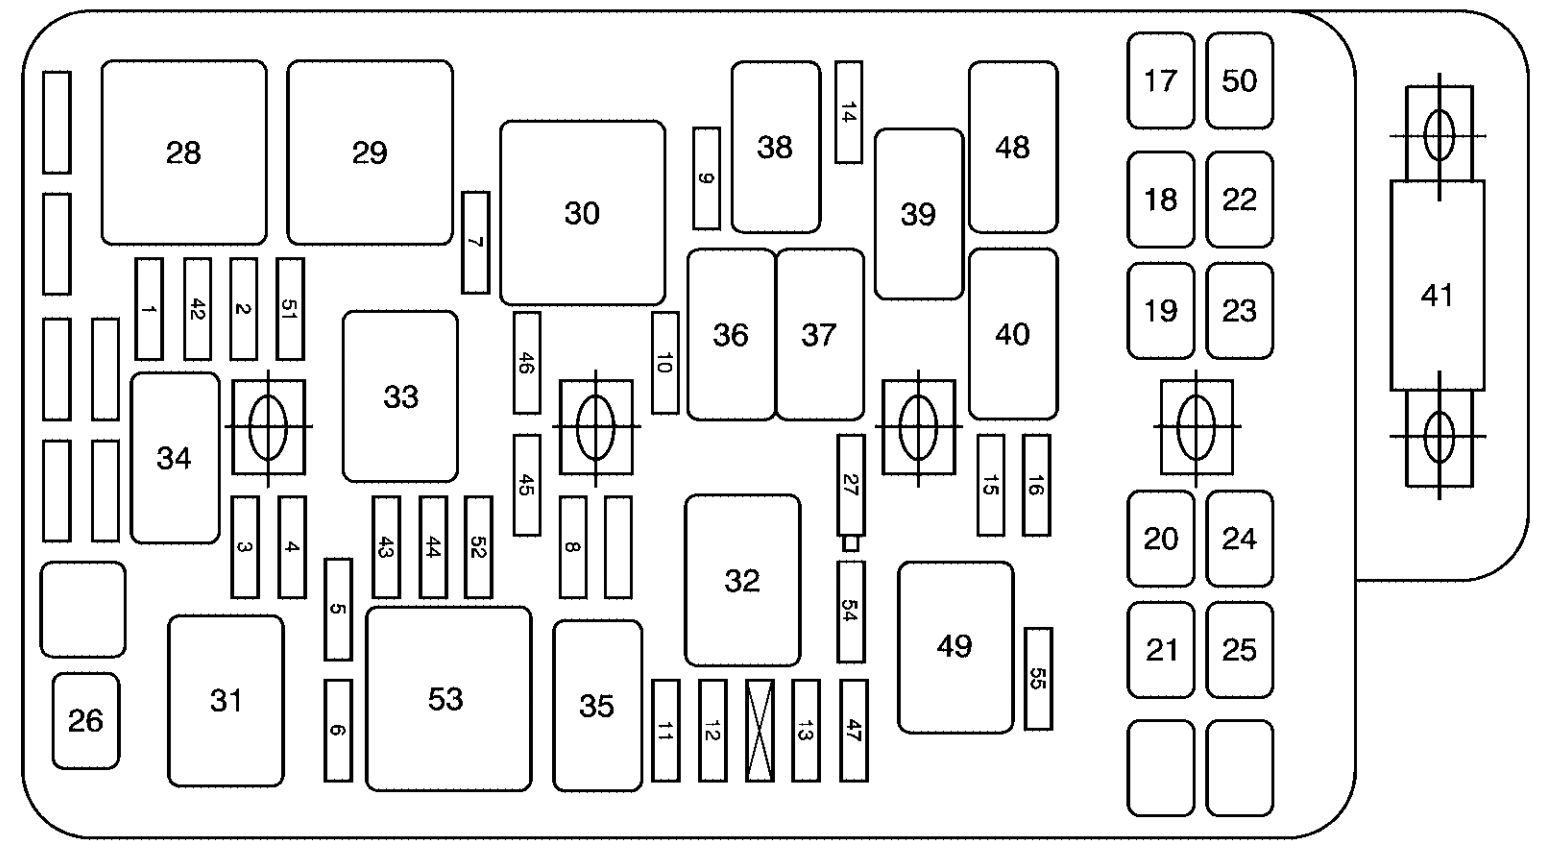 pontiac g6 fuse engine compartment g6 fuse box fuse diagram for 2006 pontiac grand am \u2022 wiring 2009 pontiac g5 fuse box location at cos-gaming.co